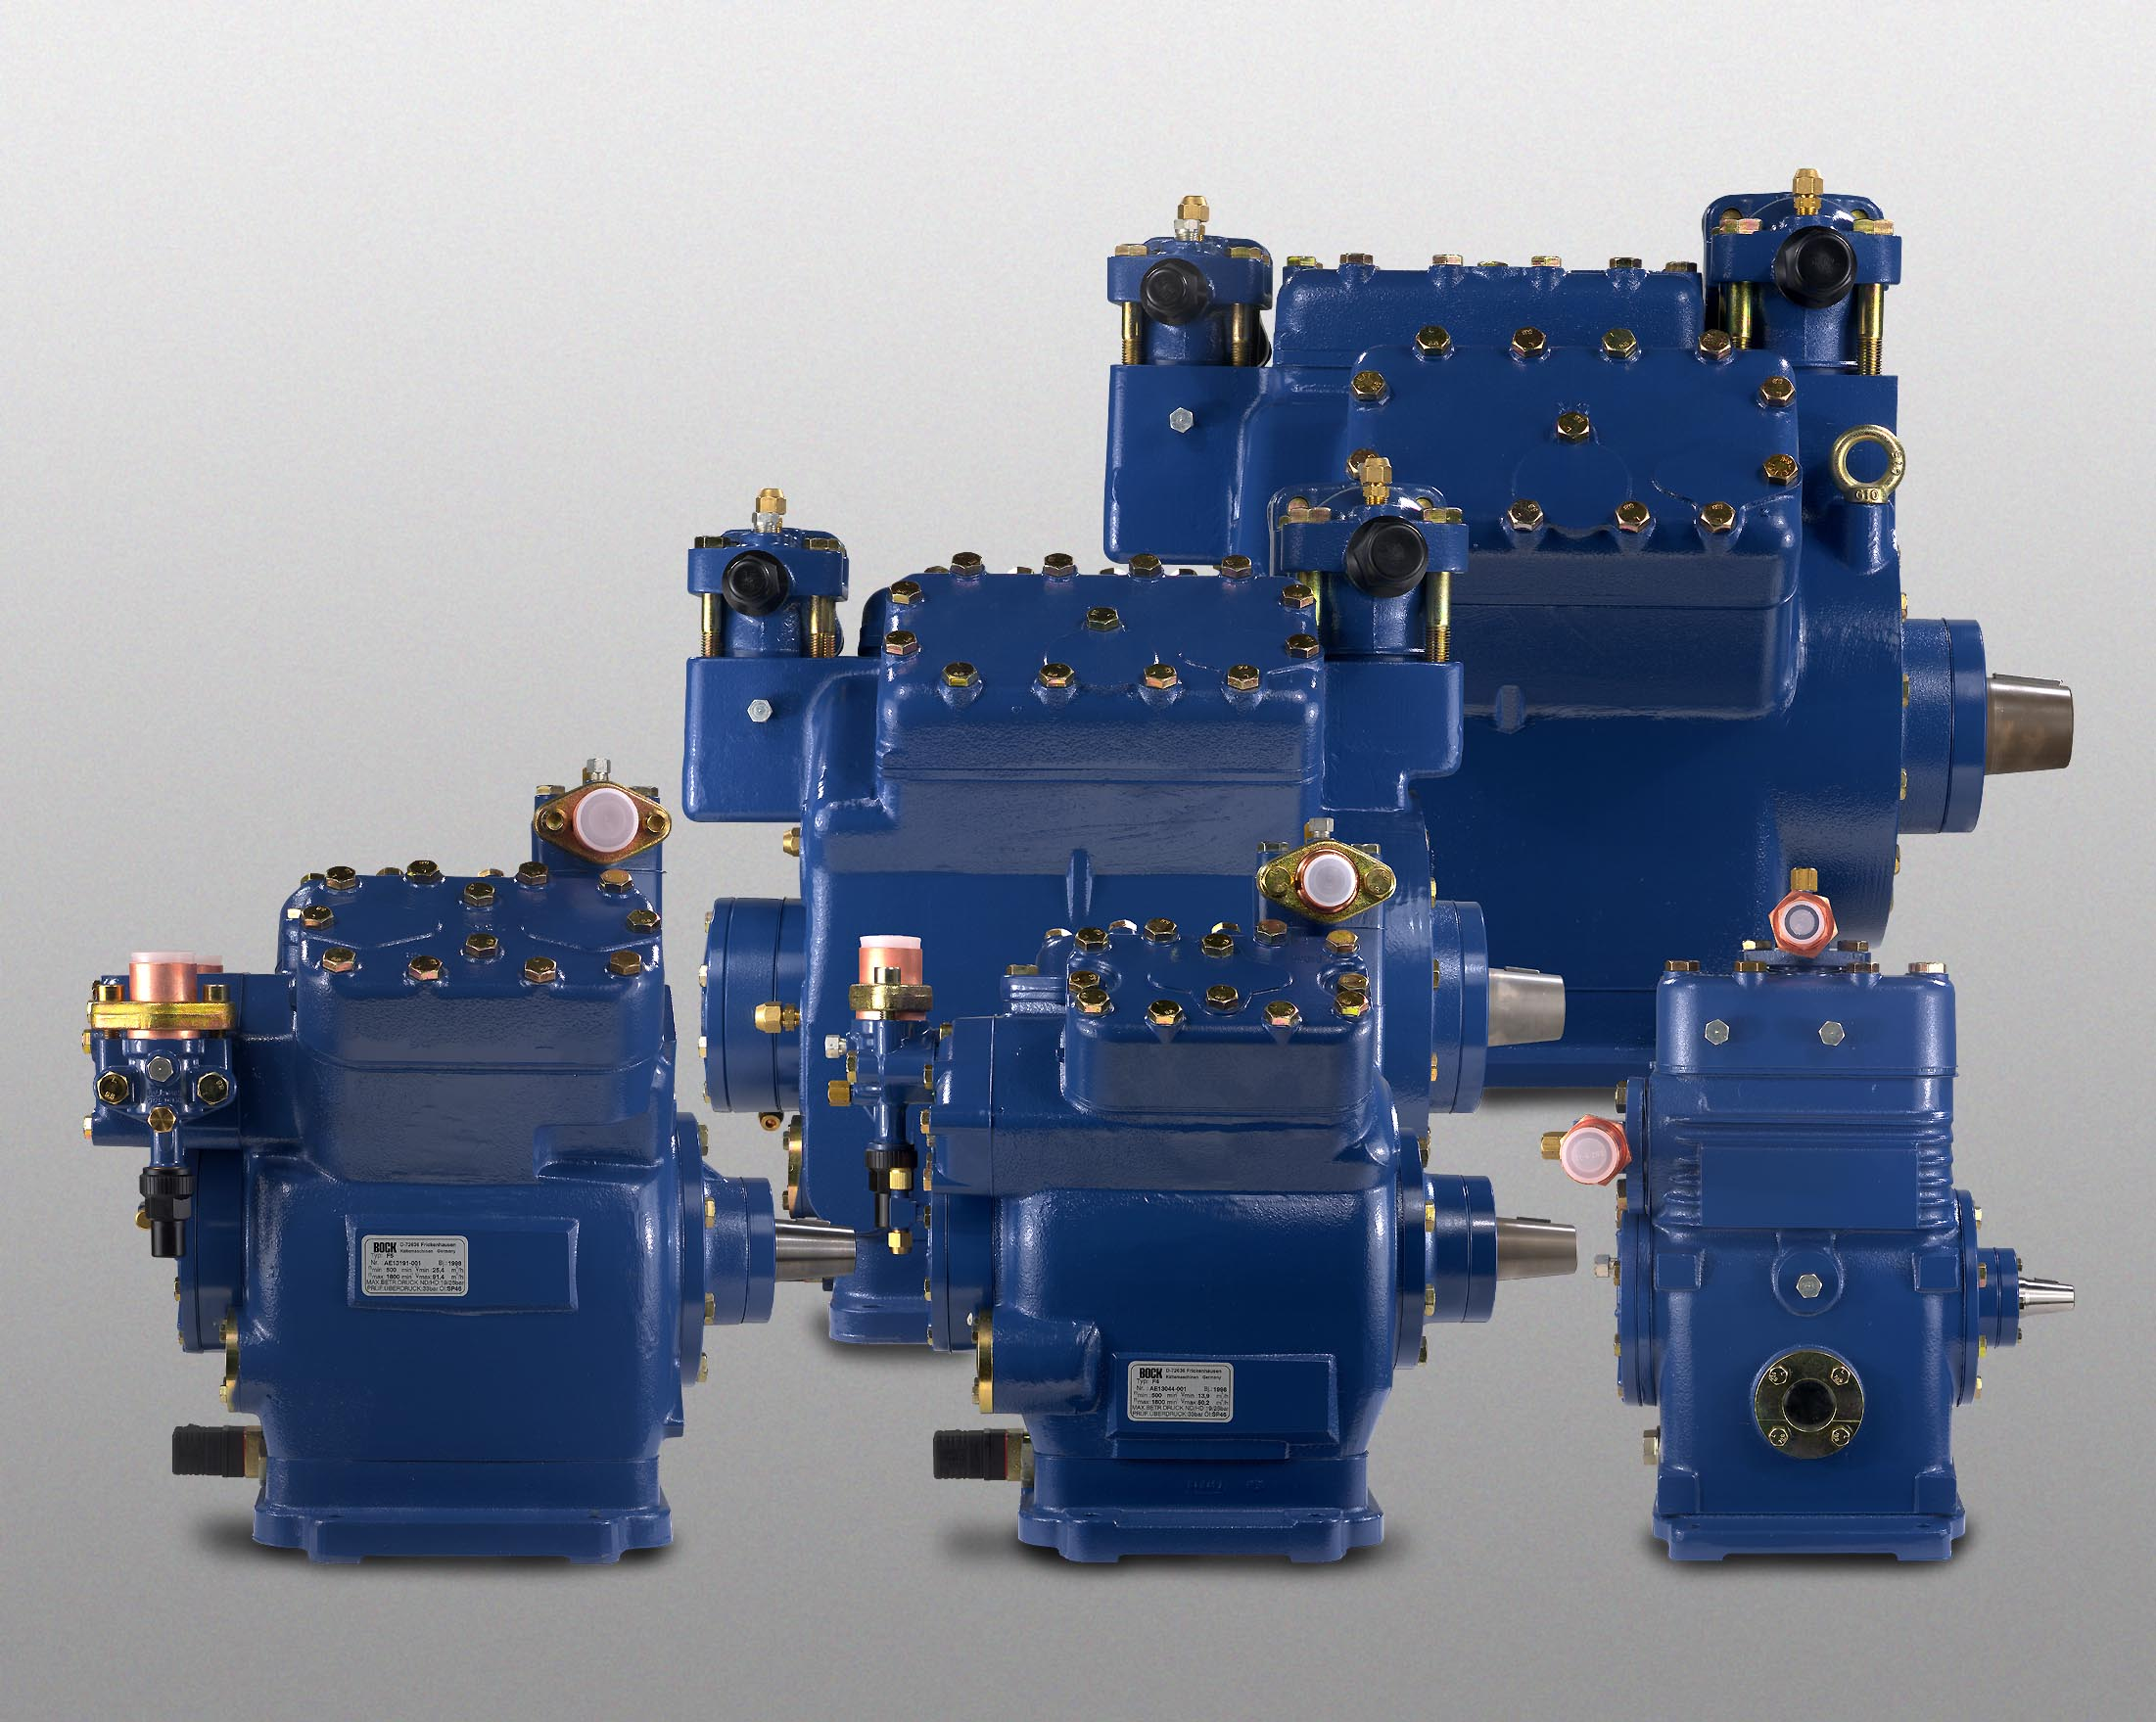 Bock compressor dealers